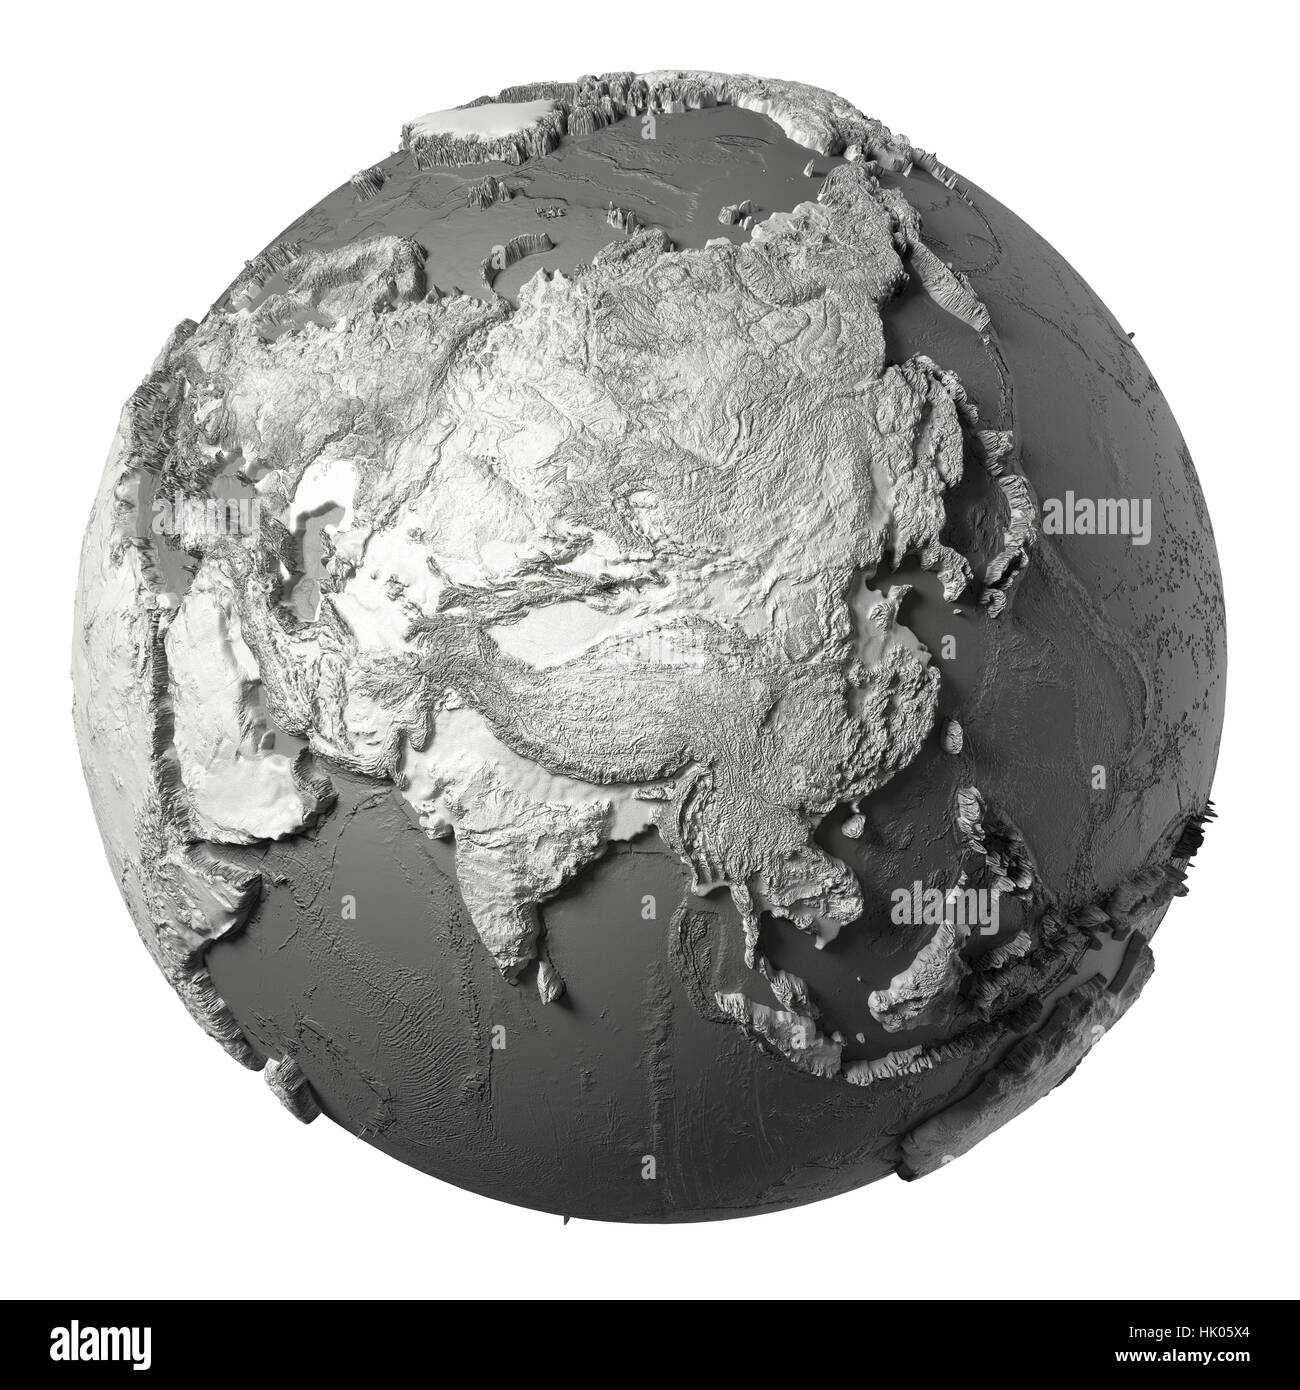 Globe model with detailed topography without water asia 3d stock globe model with detailed topography without water asia 3d rendering isolated on white background elements of this image furnished by nasa publicscrutiny Choice Image